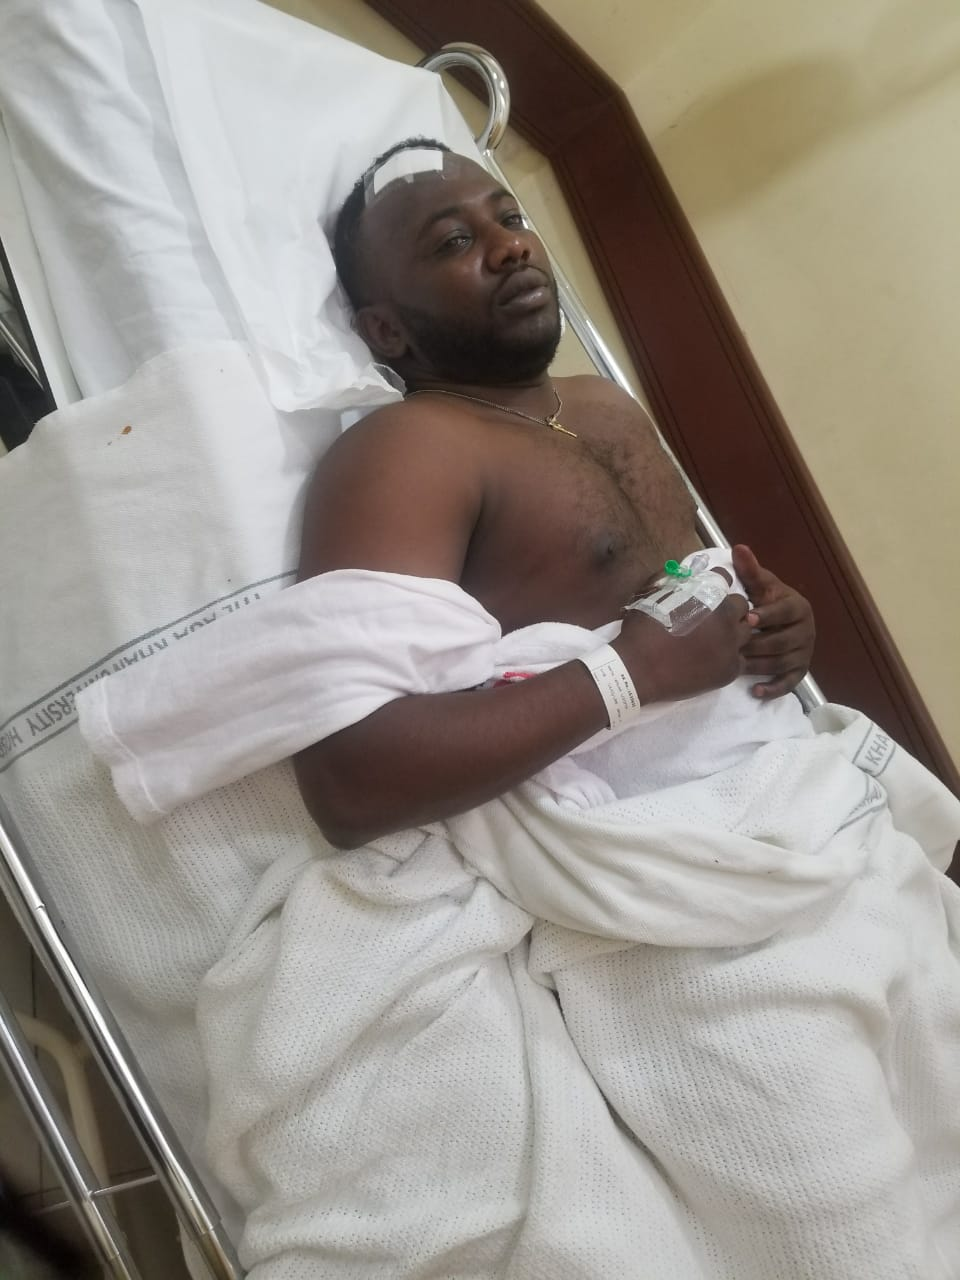 WhatsApp Image 2019 06 04 at 13.05.18 - Lamu Senator in ICU after being attack during date with Saumu Mbuvi